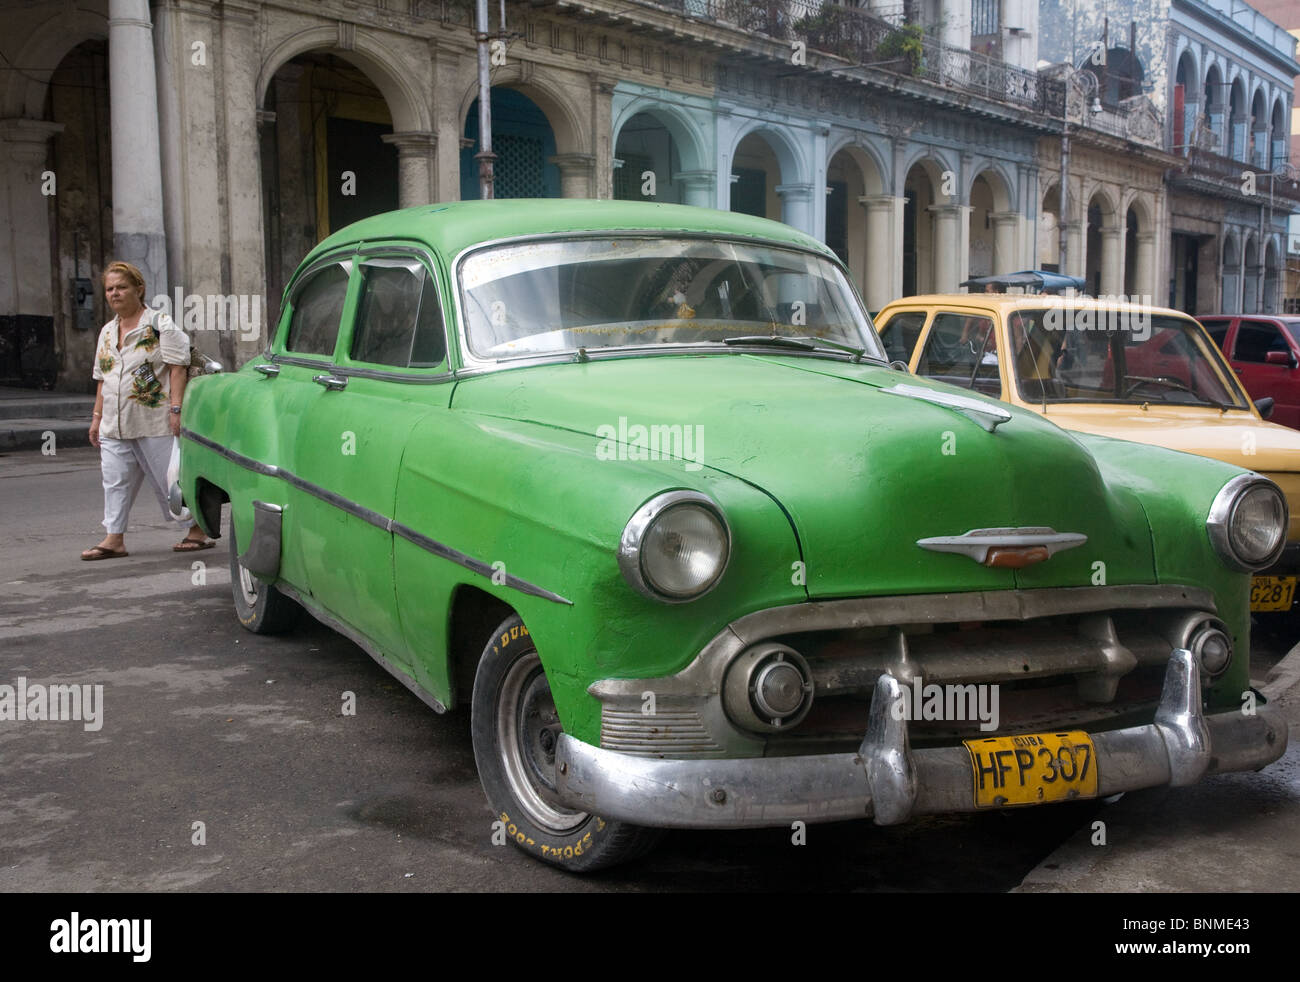 Old green chevrolet car in front of colonial buildings in old ...